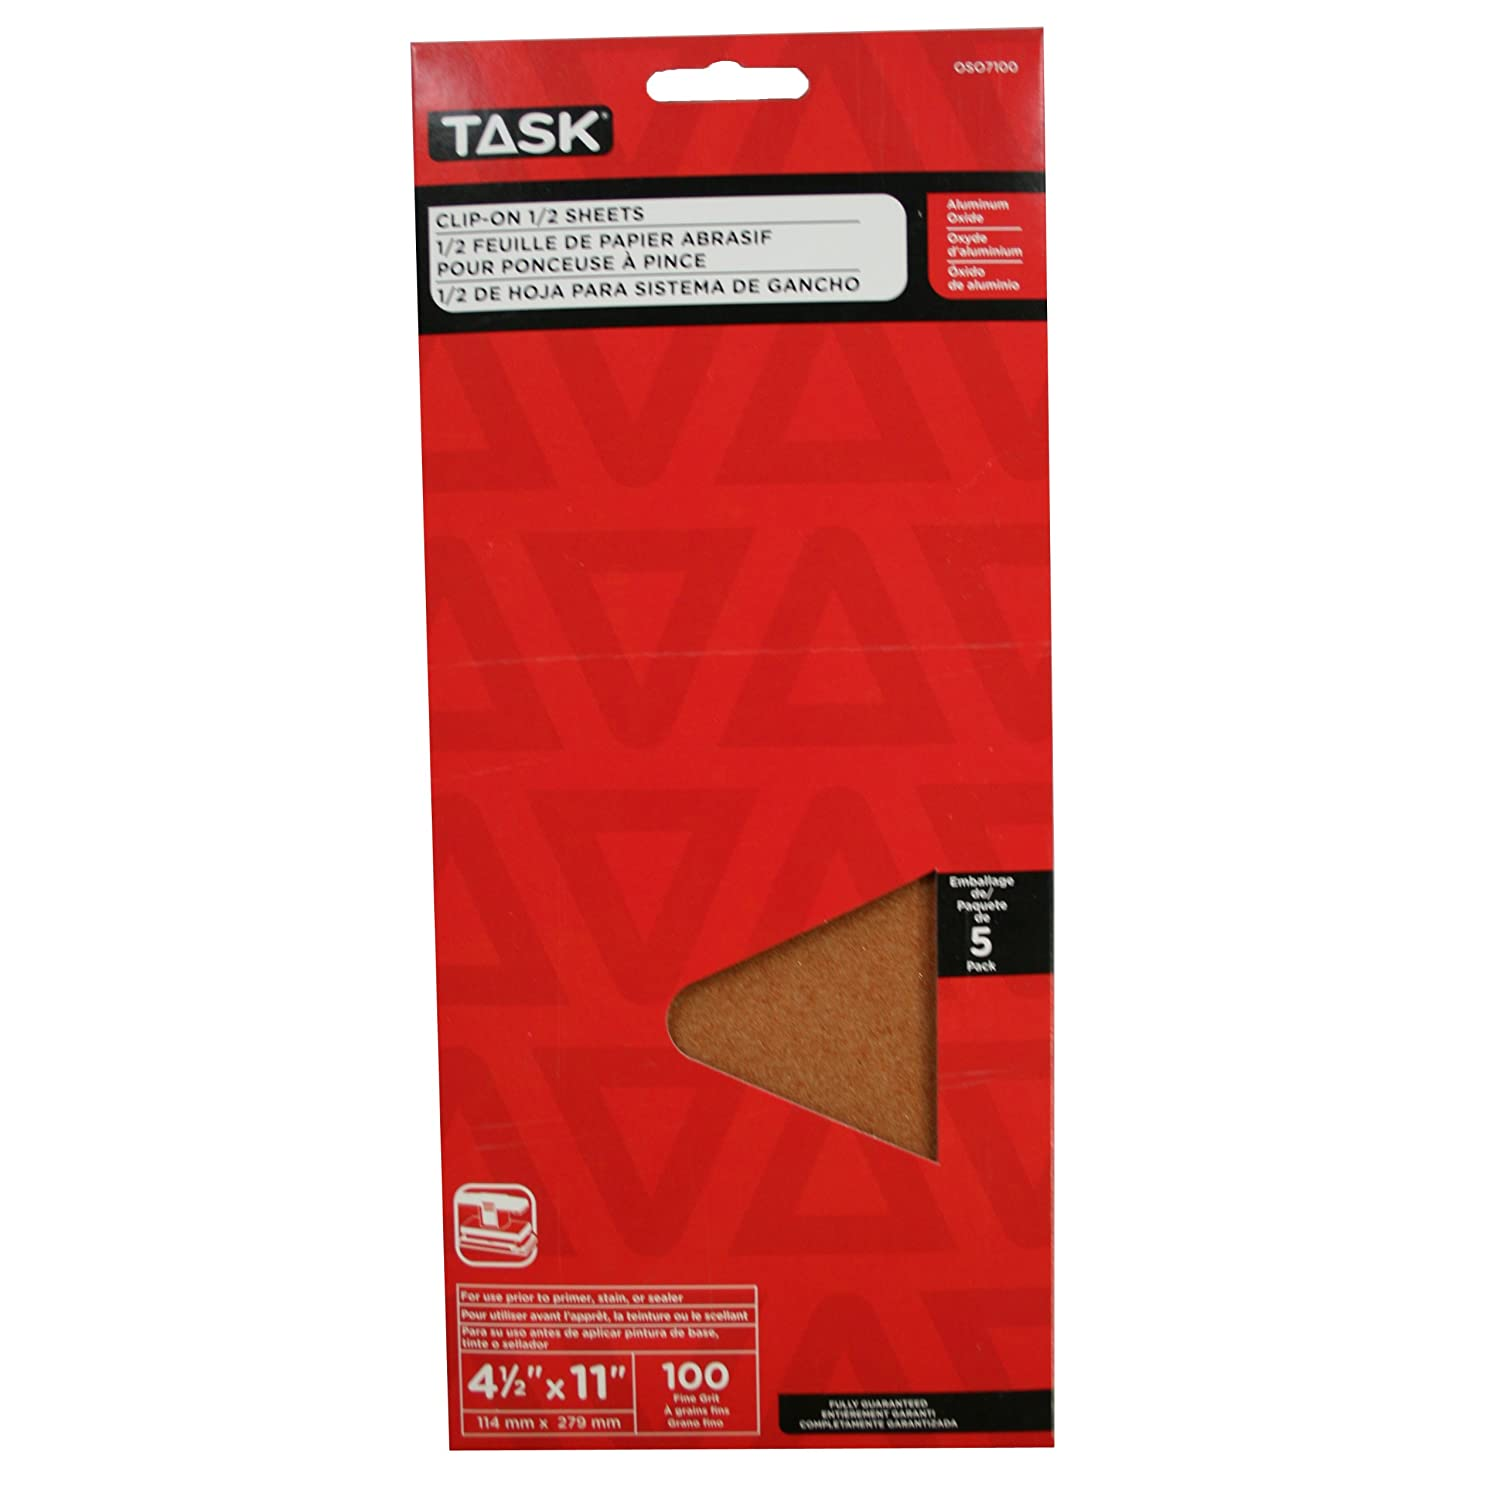 100 Grit 5-Pack LCM Team Task Tools OSO7100 4-1//2-Inch by 11-Inch Clip-On 1//2-Sheet Sandpaper Task Tools